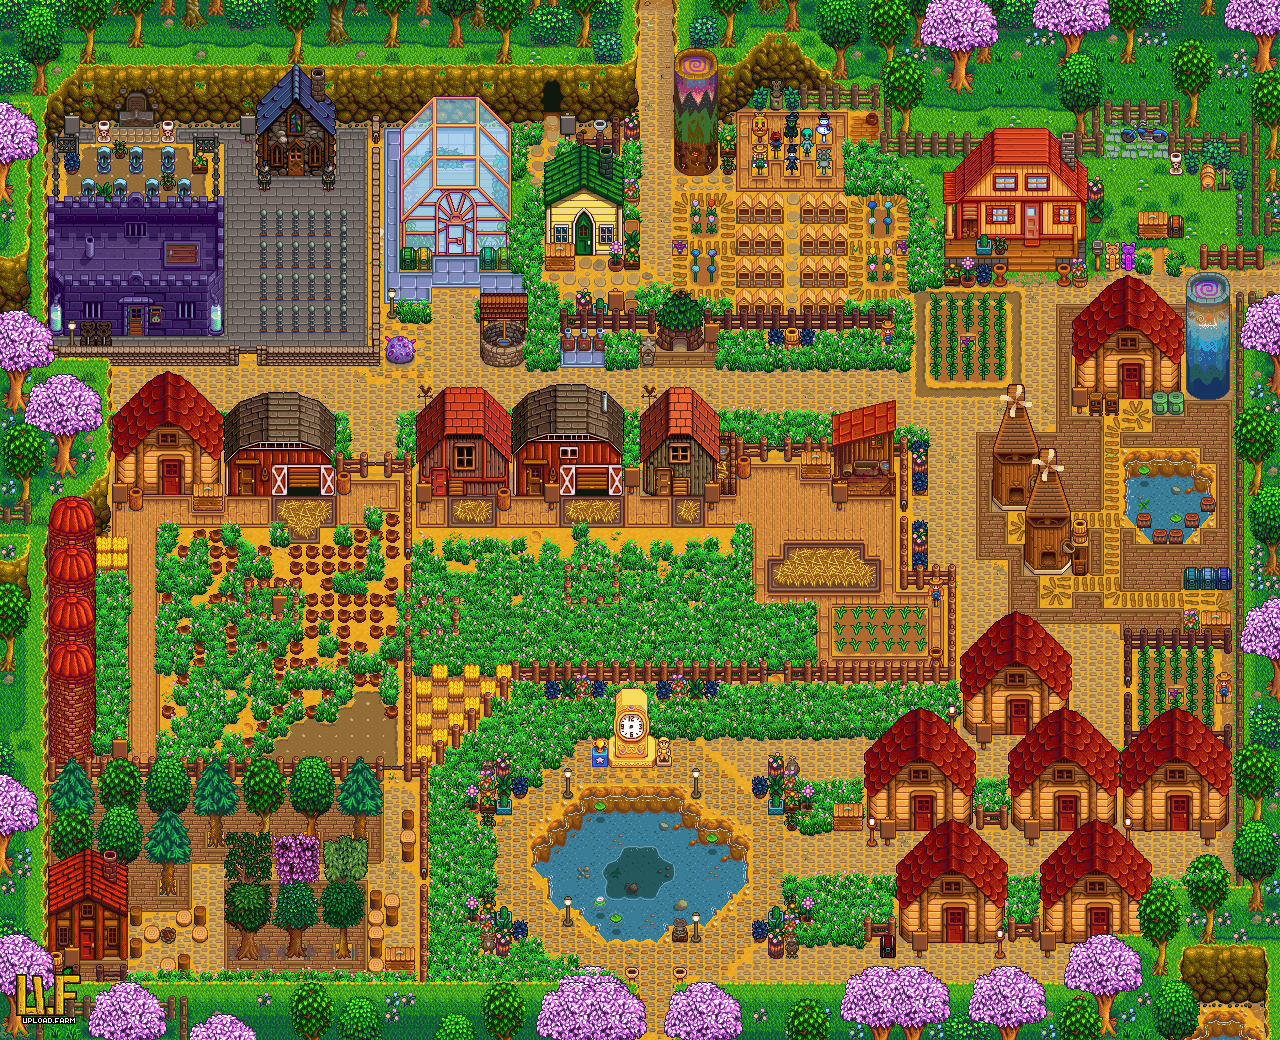 Download Stardew Valley - Full Size PNG Image - PNGkit